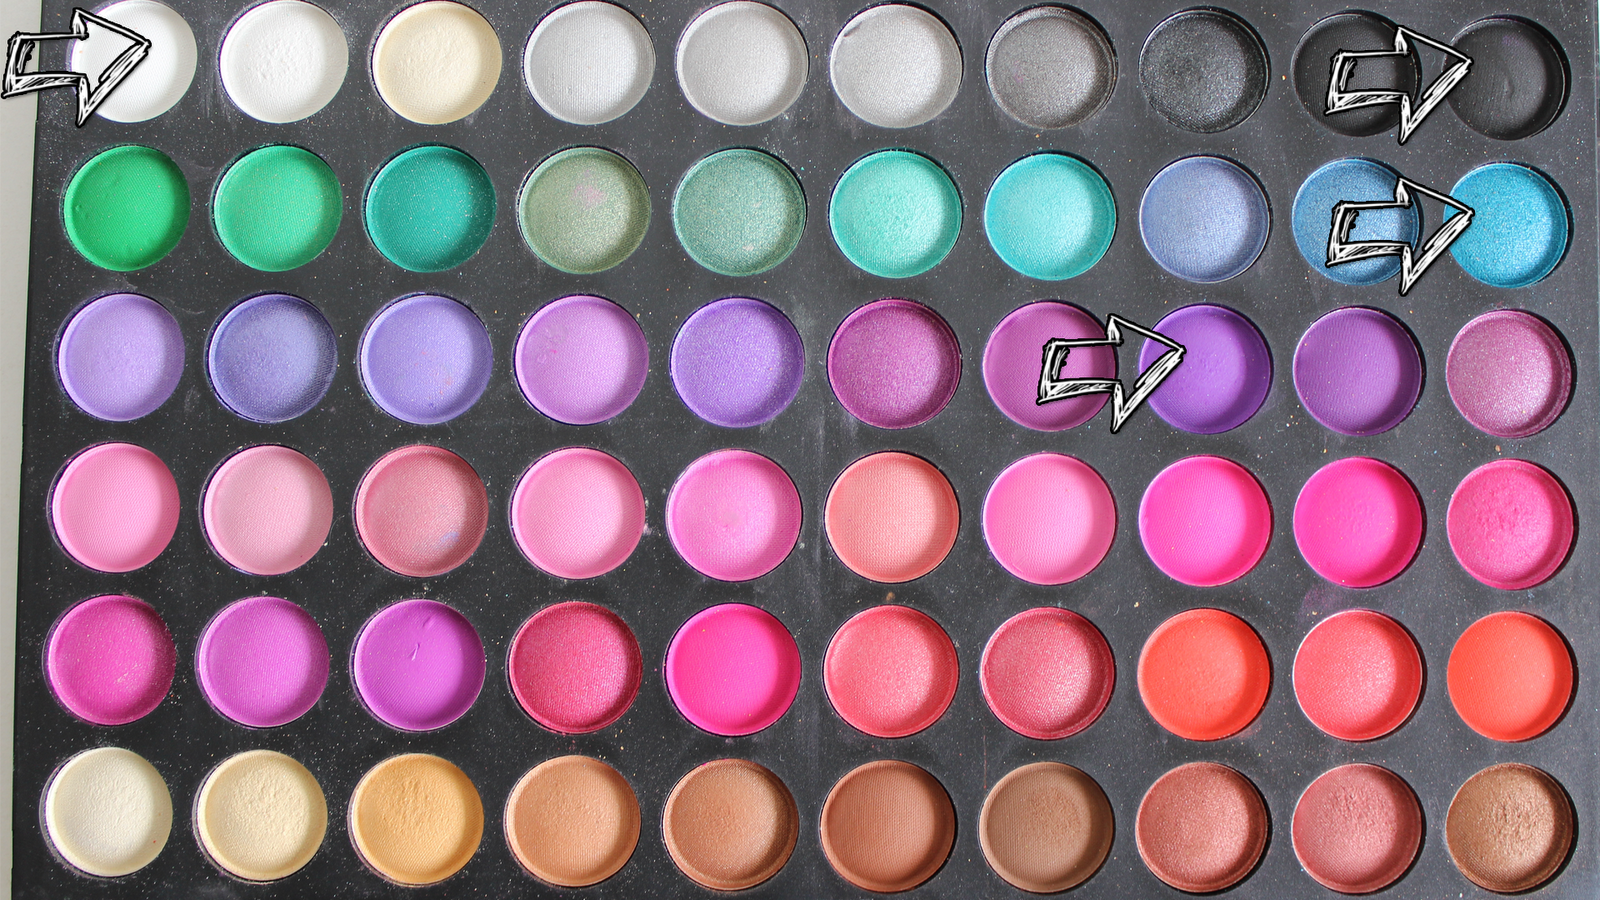 Makeup geek cosmetics corrupt